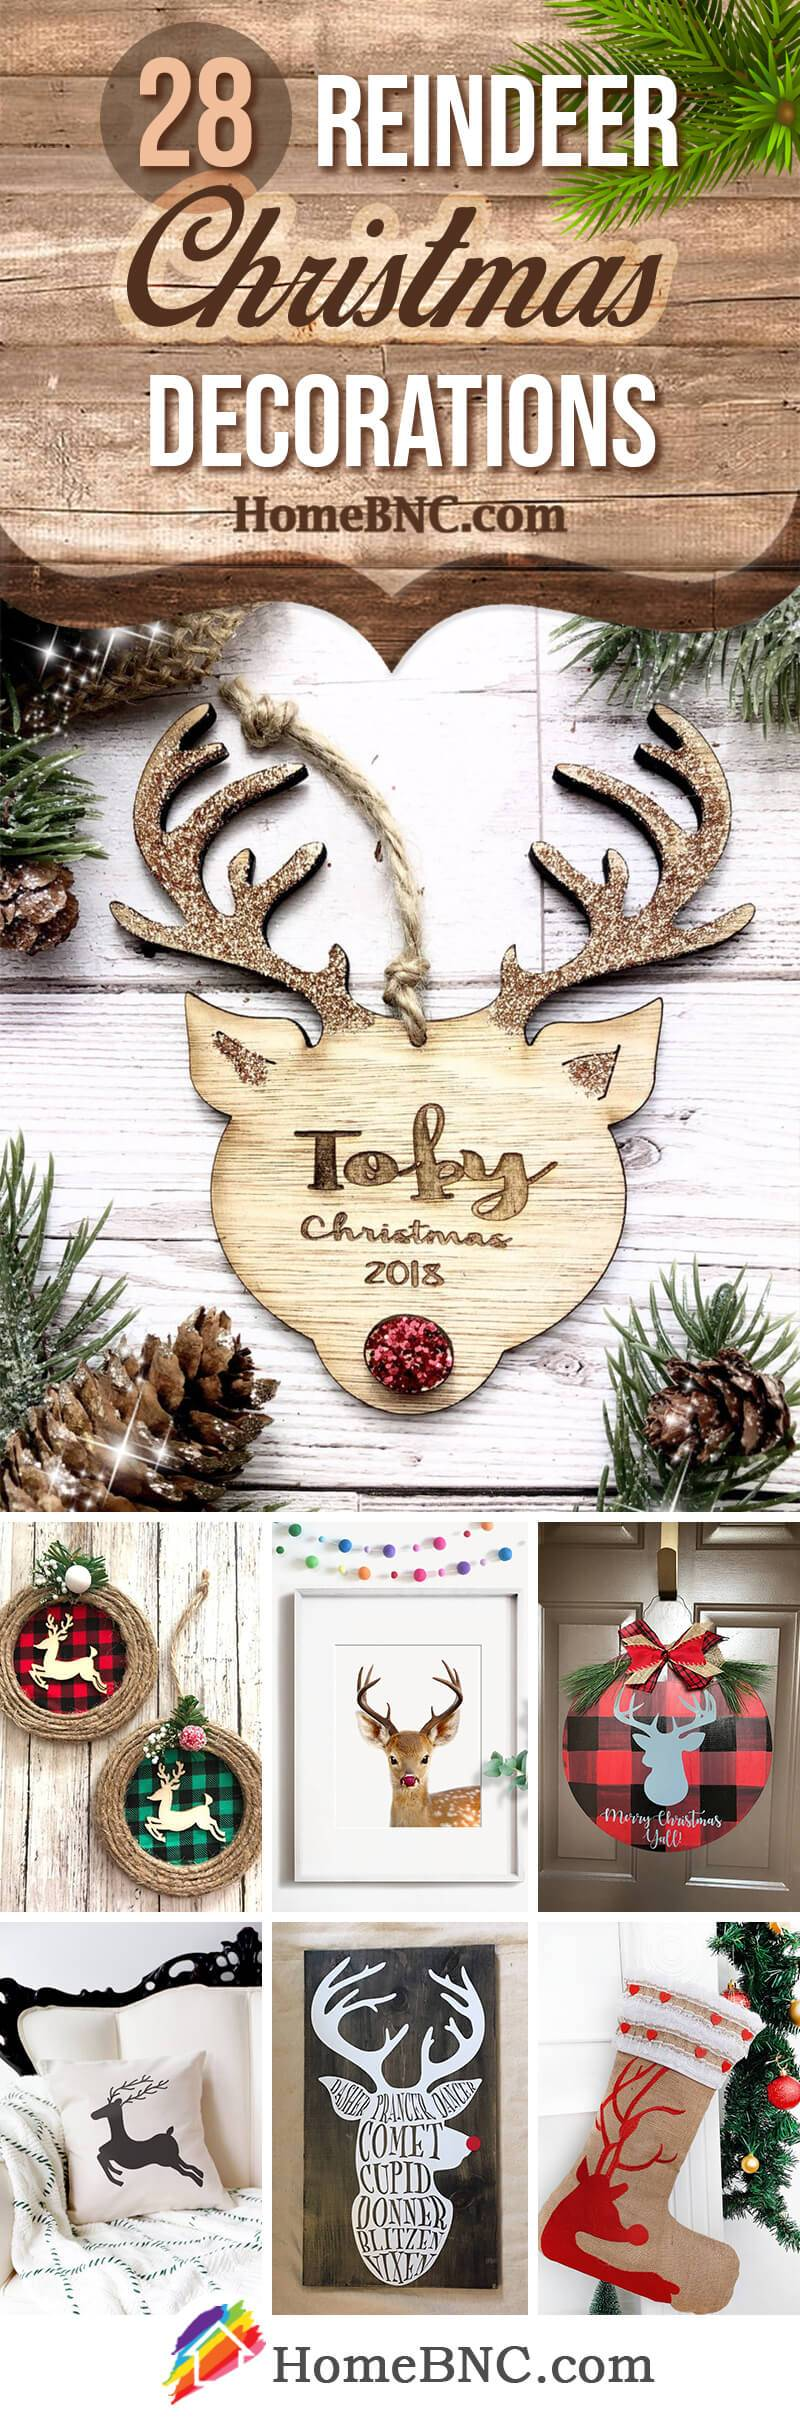 best christmas reindeer decoration ideas pinterest share homebnc